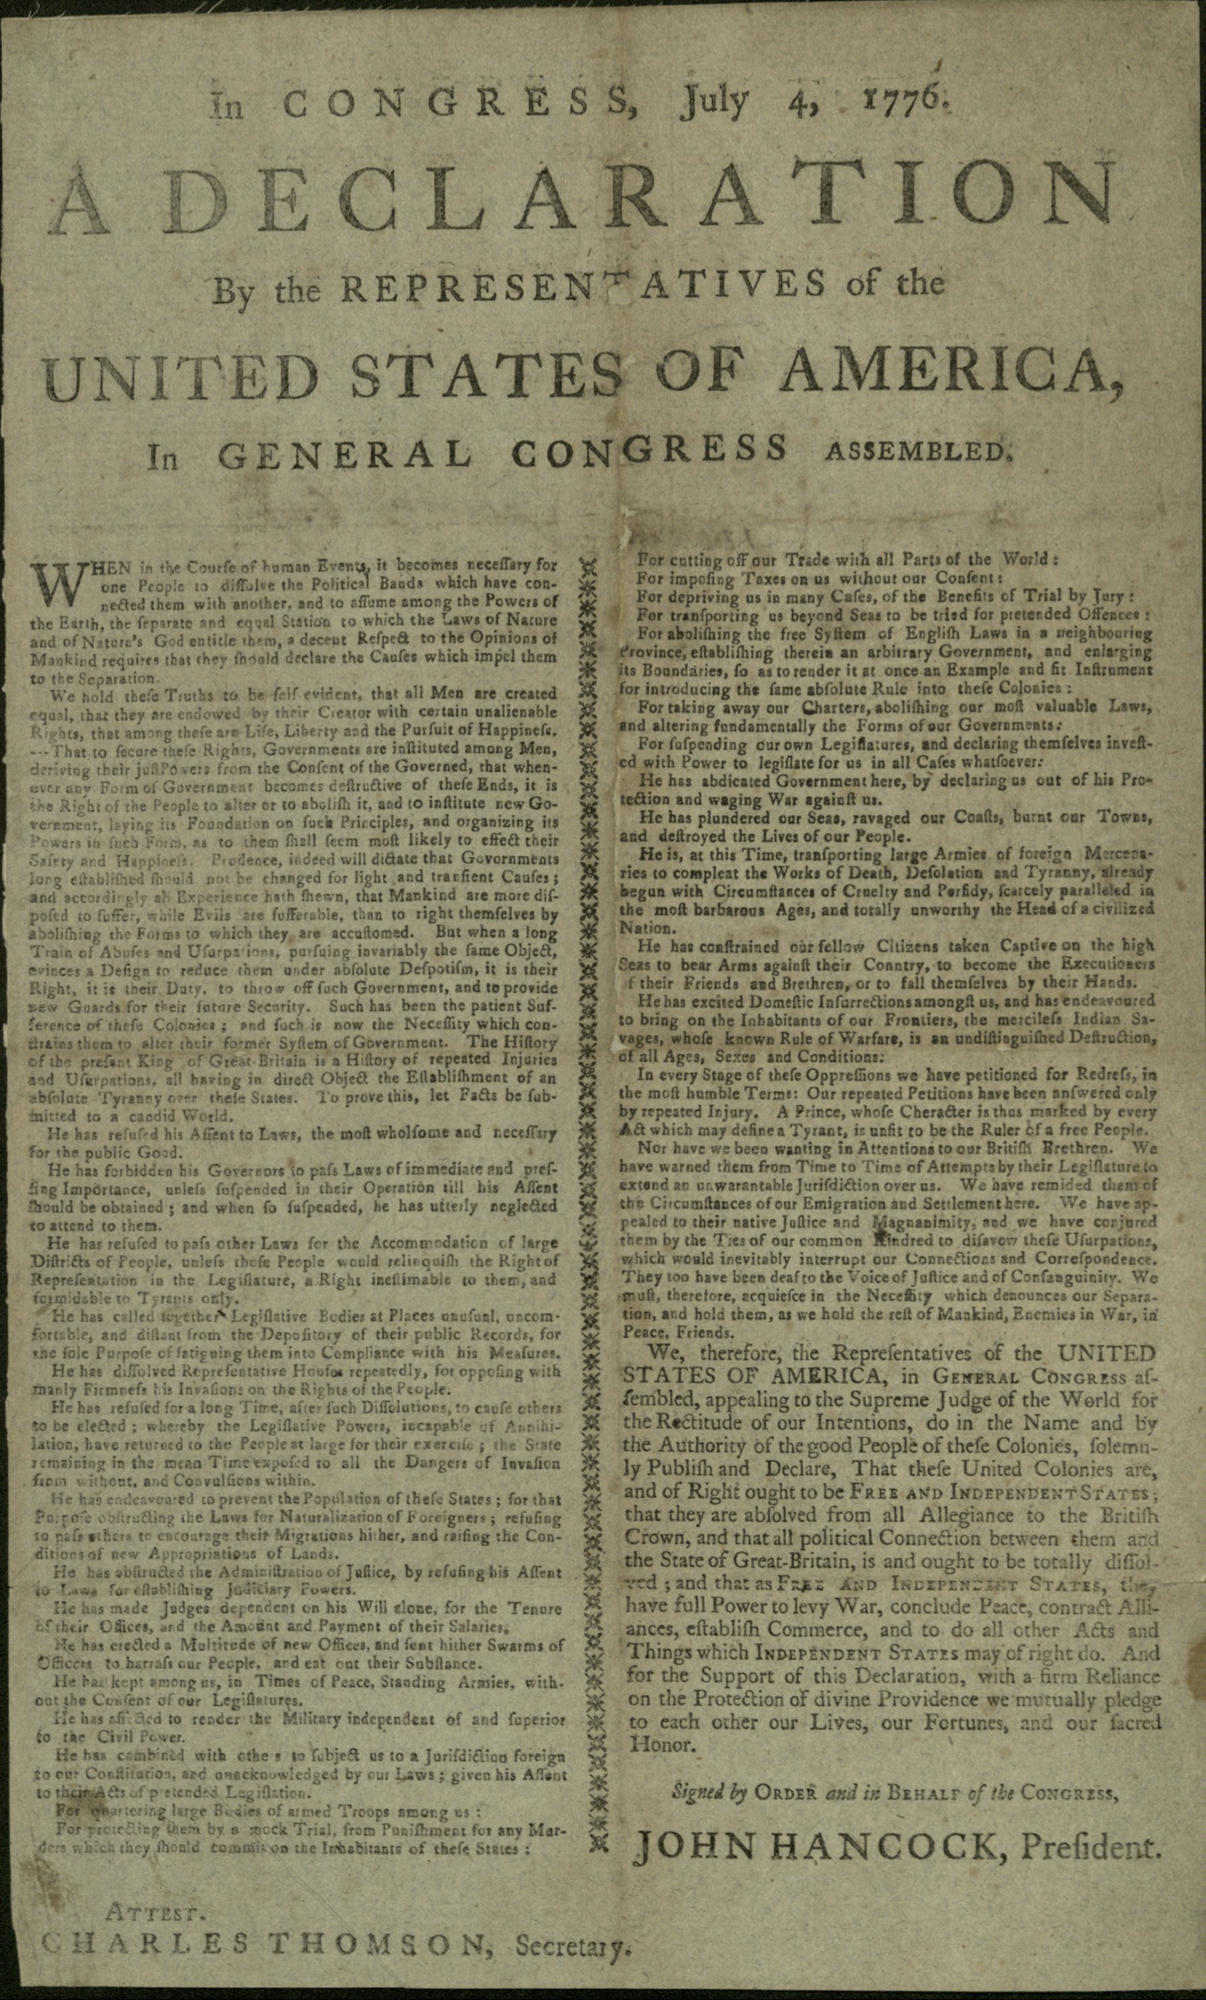 Broadside of the Declaration of Independence, Printed by Thomas and Samuel Green, New Haven, CT